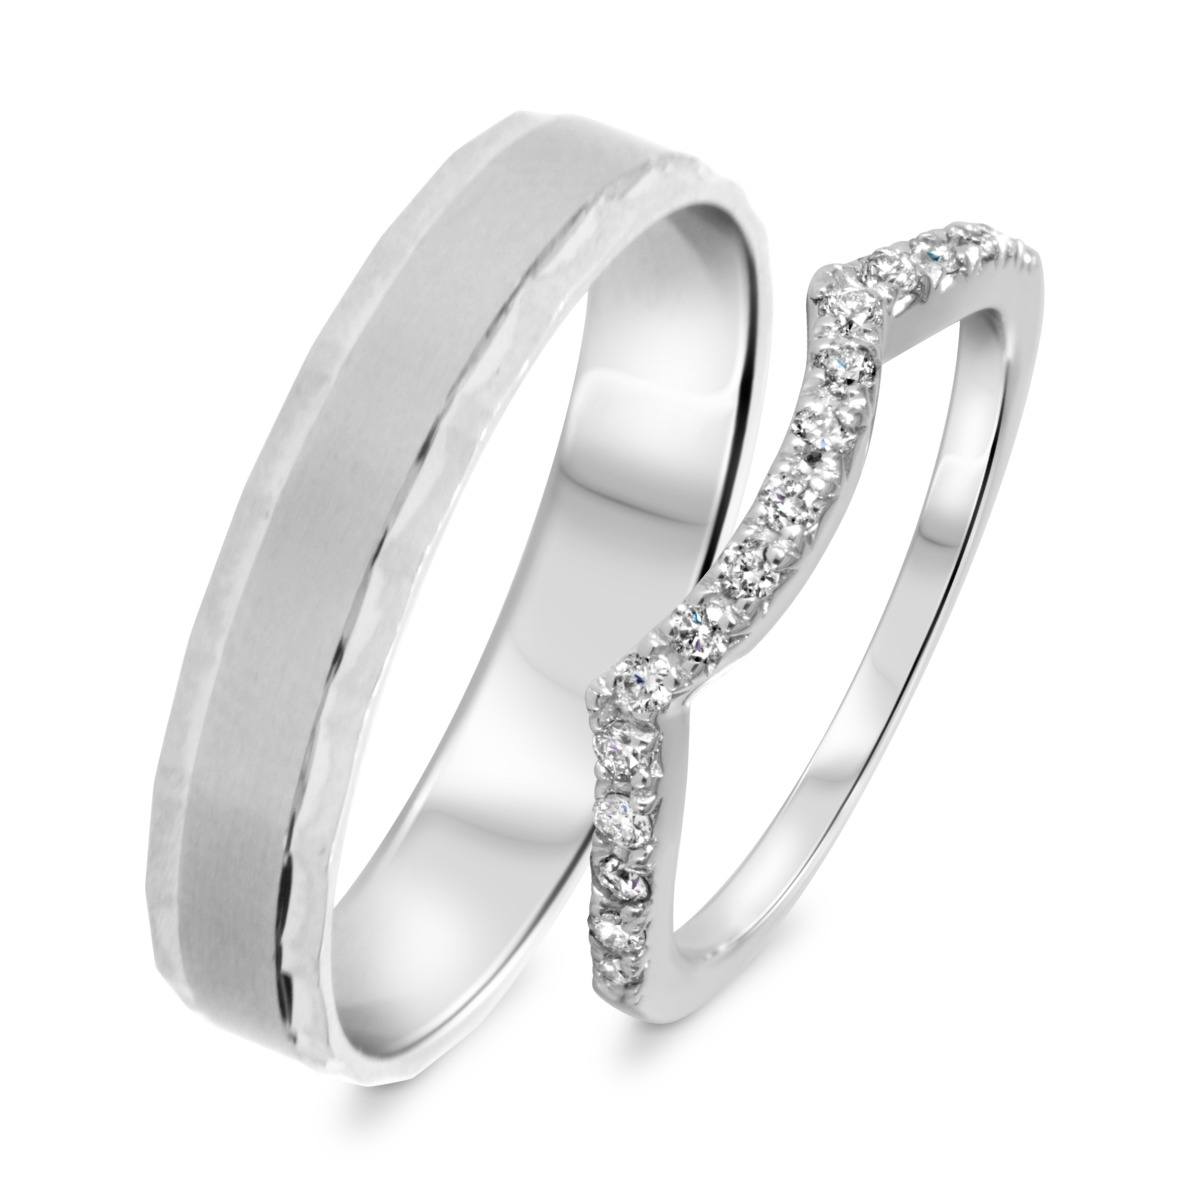 1/3 Carat T.W. Round Cut Diamond His And Hers Wedding Band Set 14K White Gold